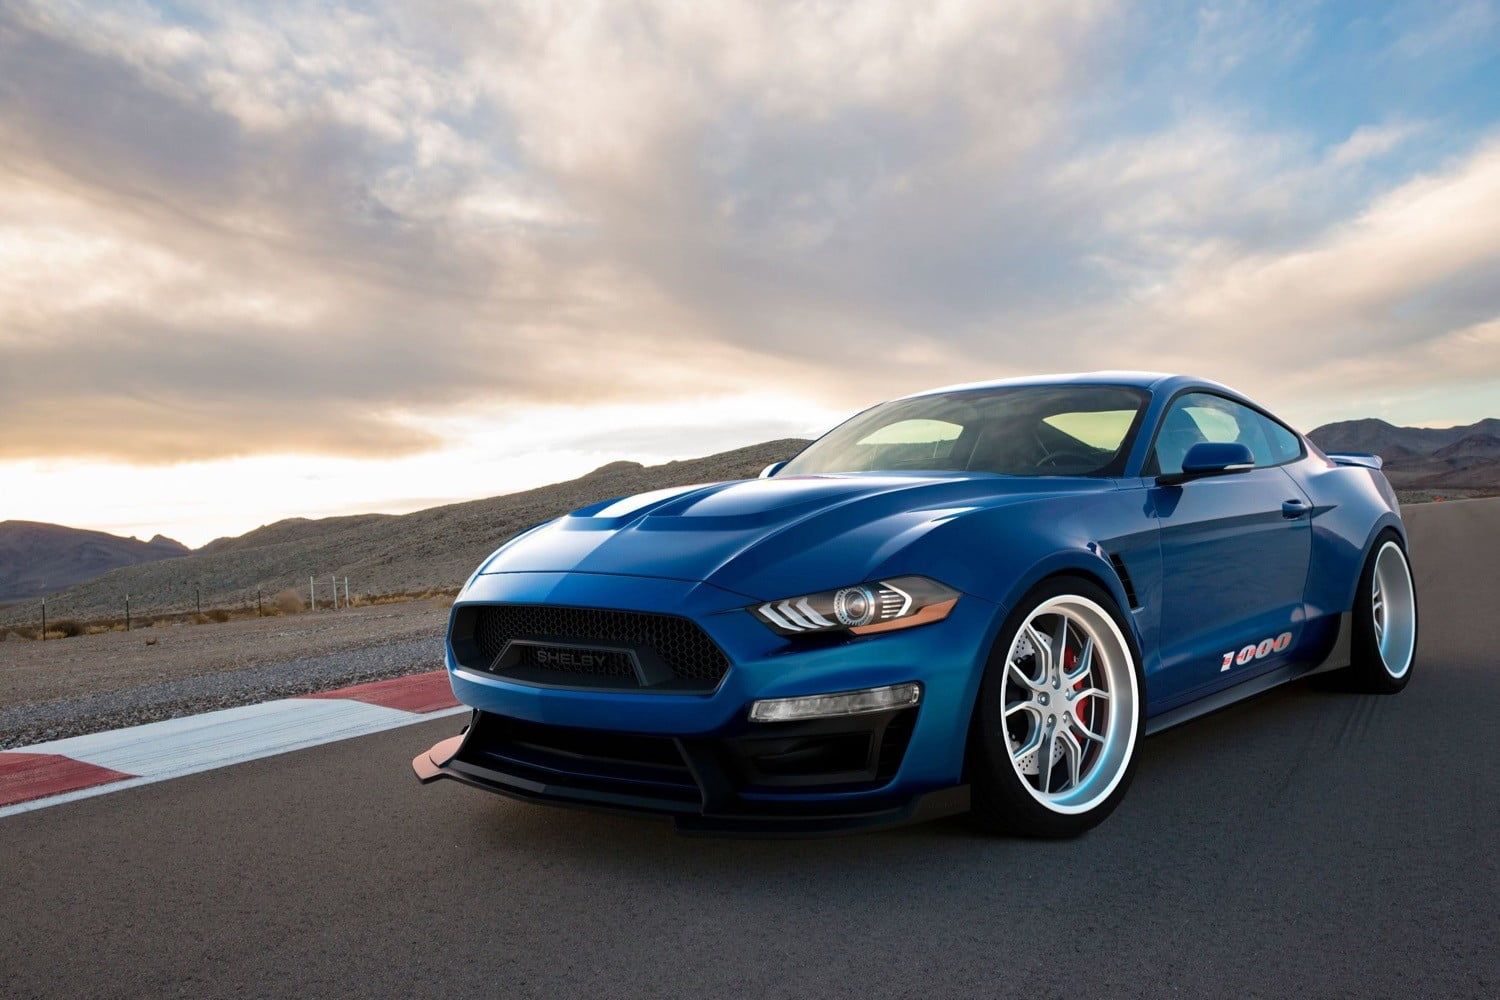 The 1,000-hp Shelby 1000 Mustang is so extreme, it's not street legal